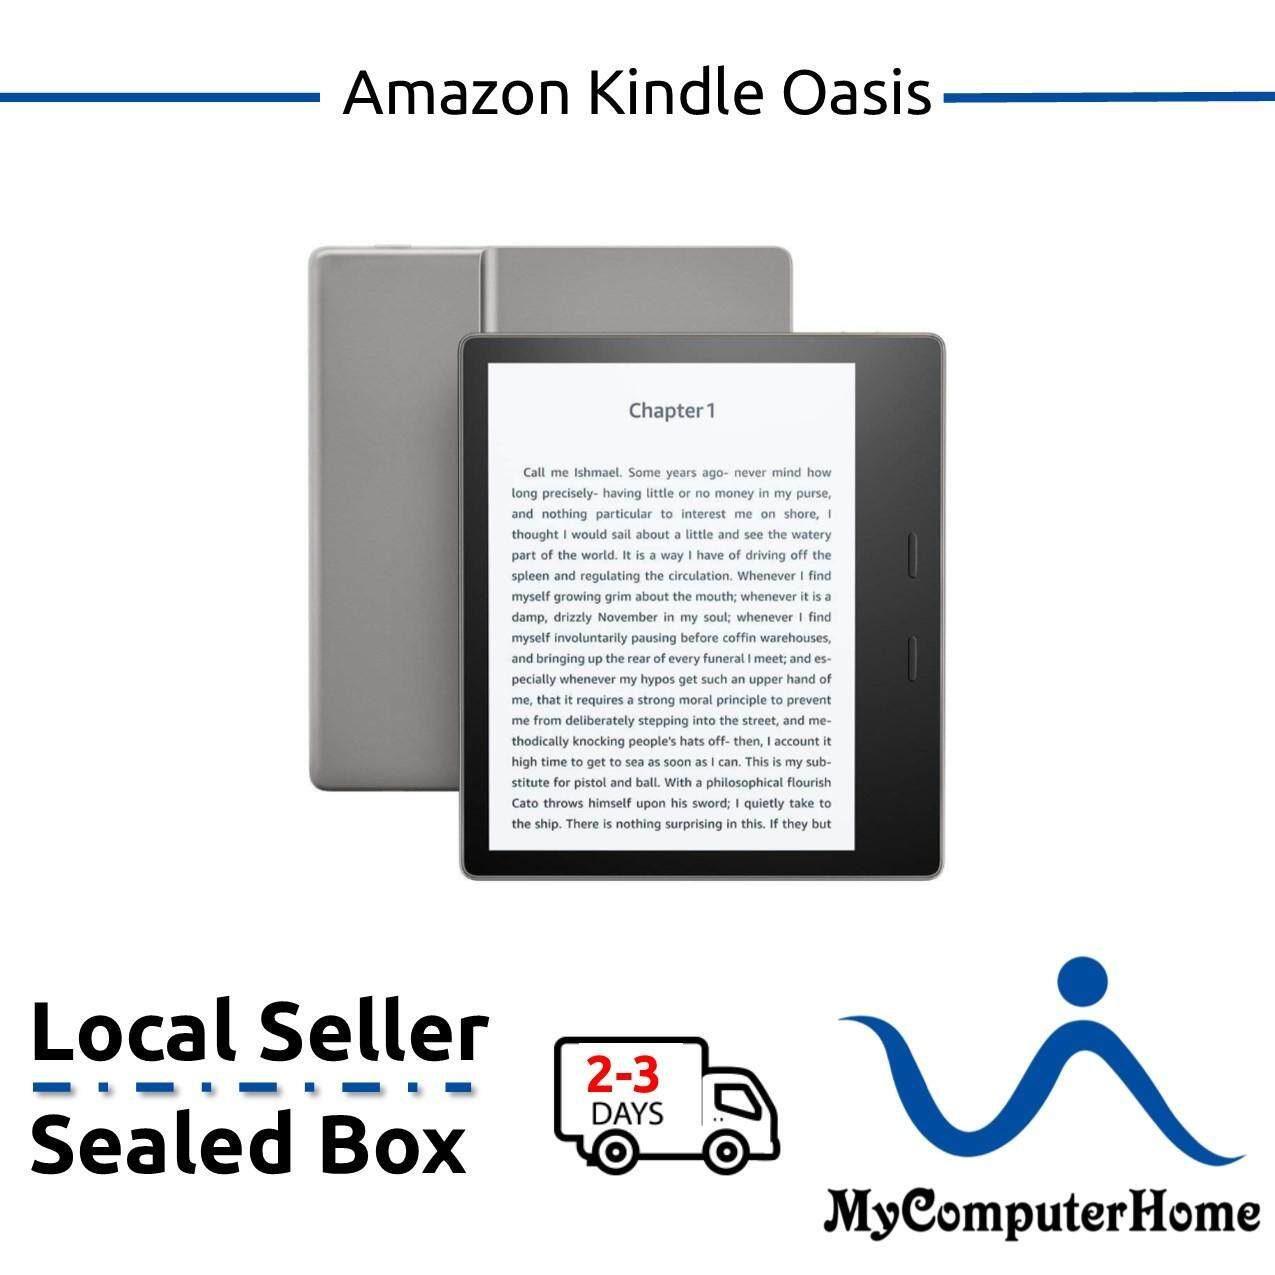 Amazon Kindle Oasis E-reader, 8 GB, Wi-Fi - Includes Special Offers  (Graphite)